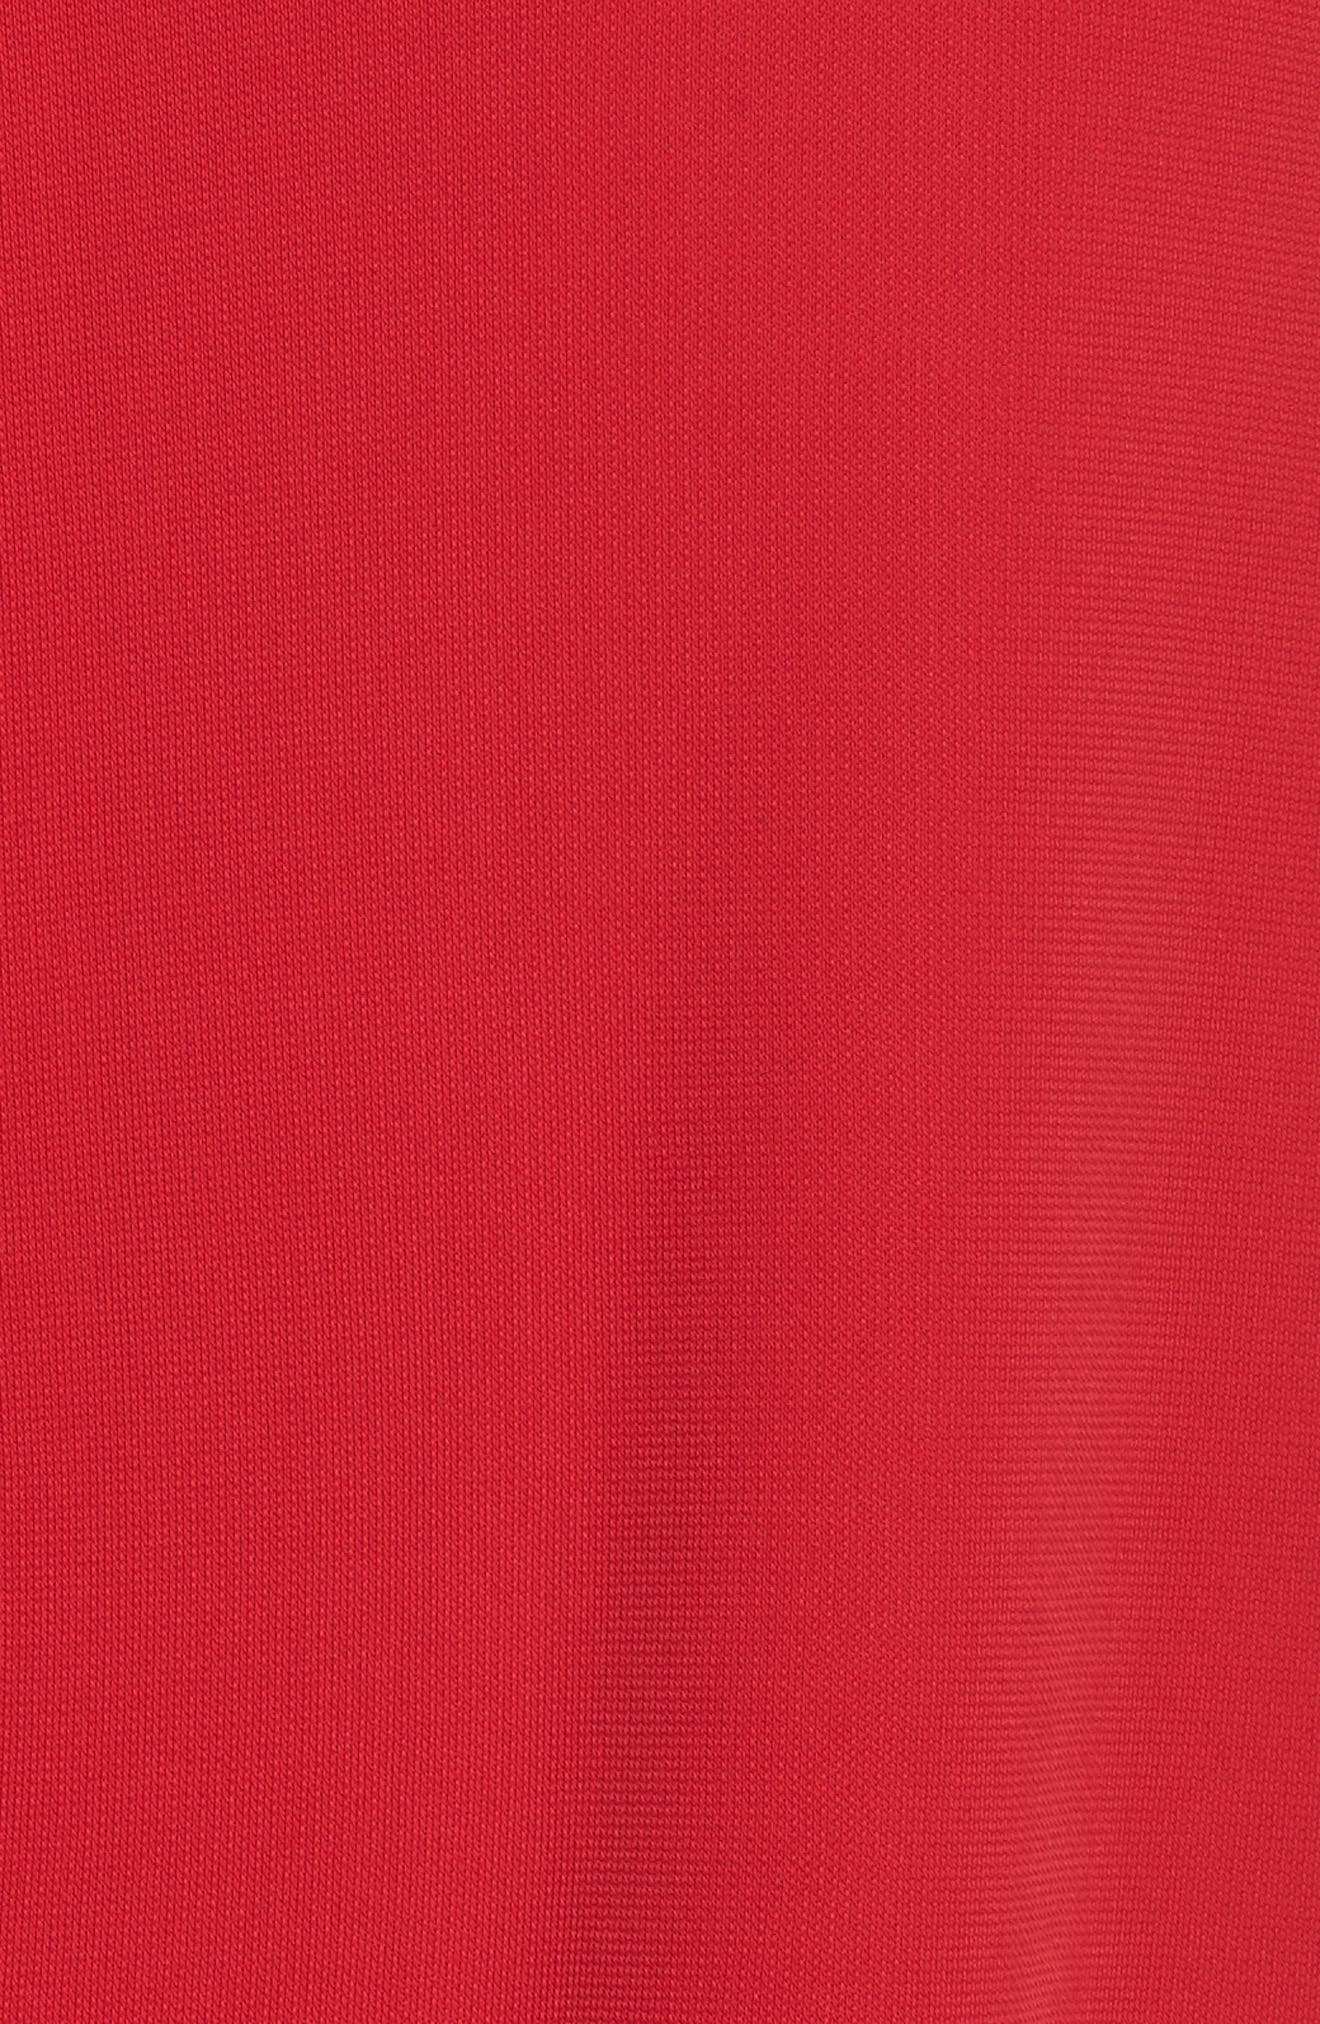 Donna Backless Jersey Dress,                             Alternate thumbnail 5, color,                             RED